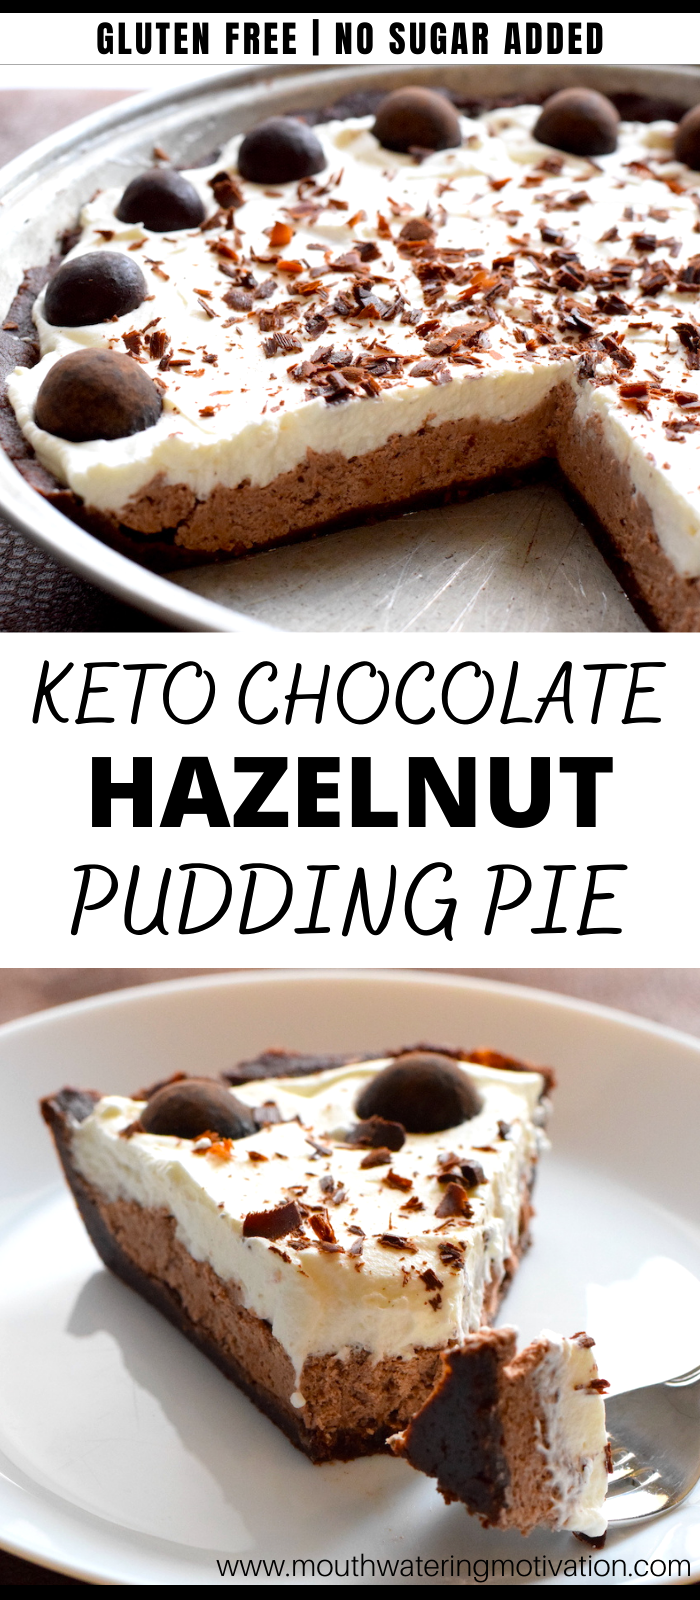 keto chocolate hazelnut pudding pie